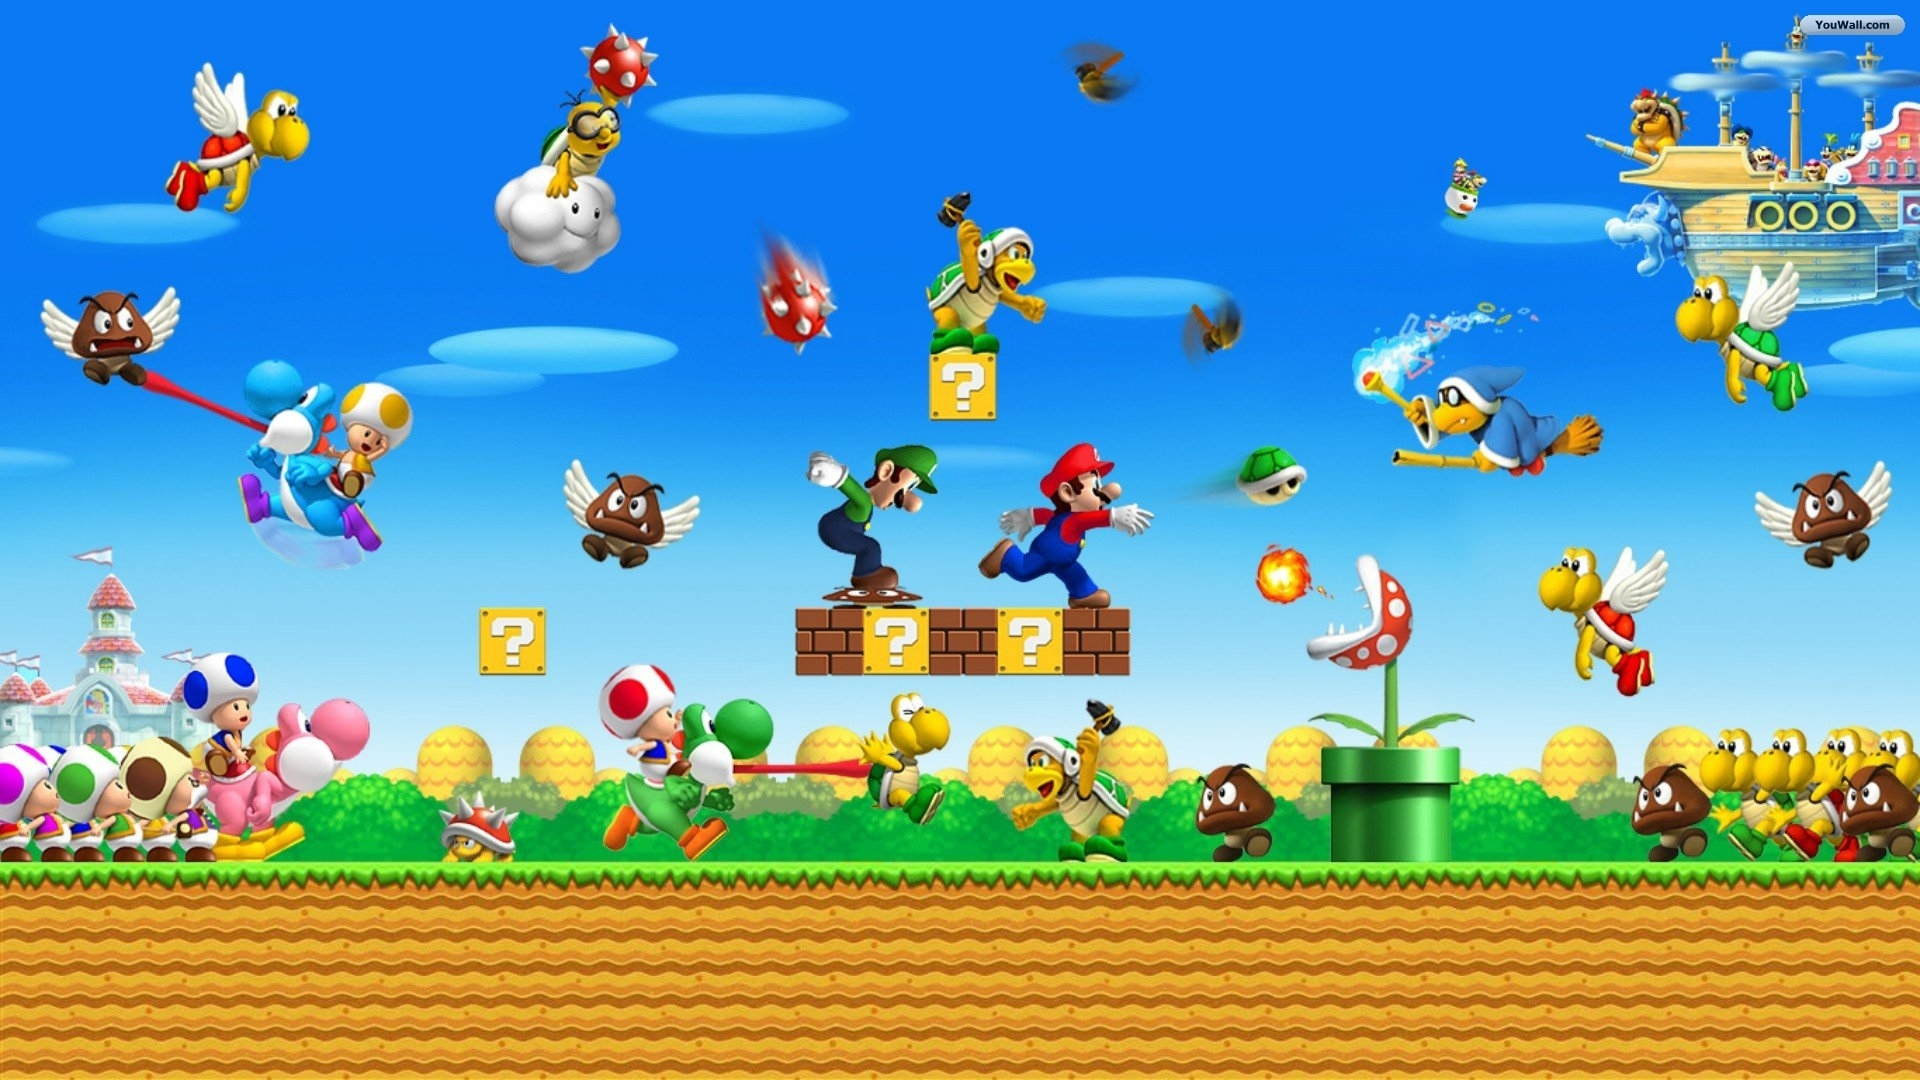 download super mario world free hd wallpaper background 1920×1080